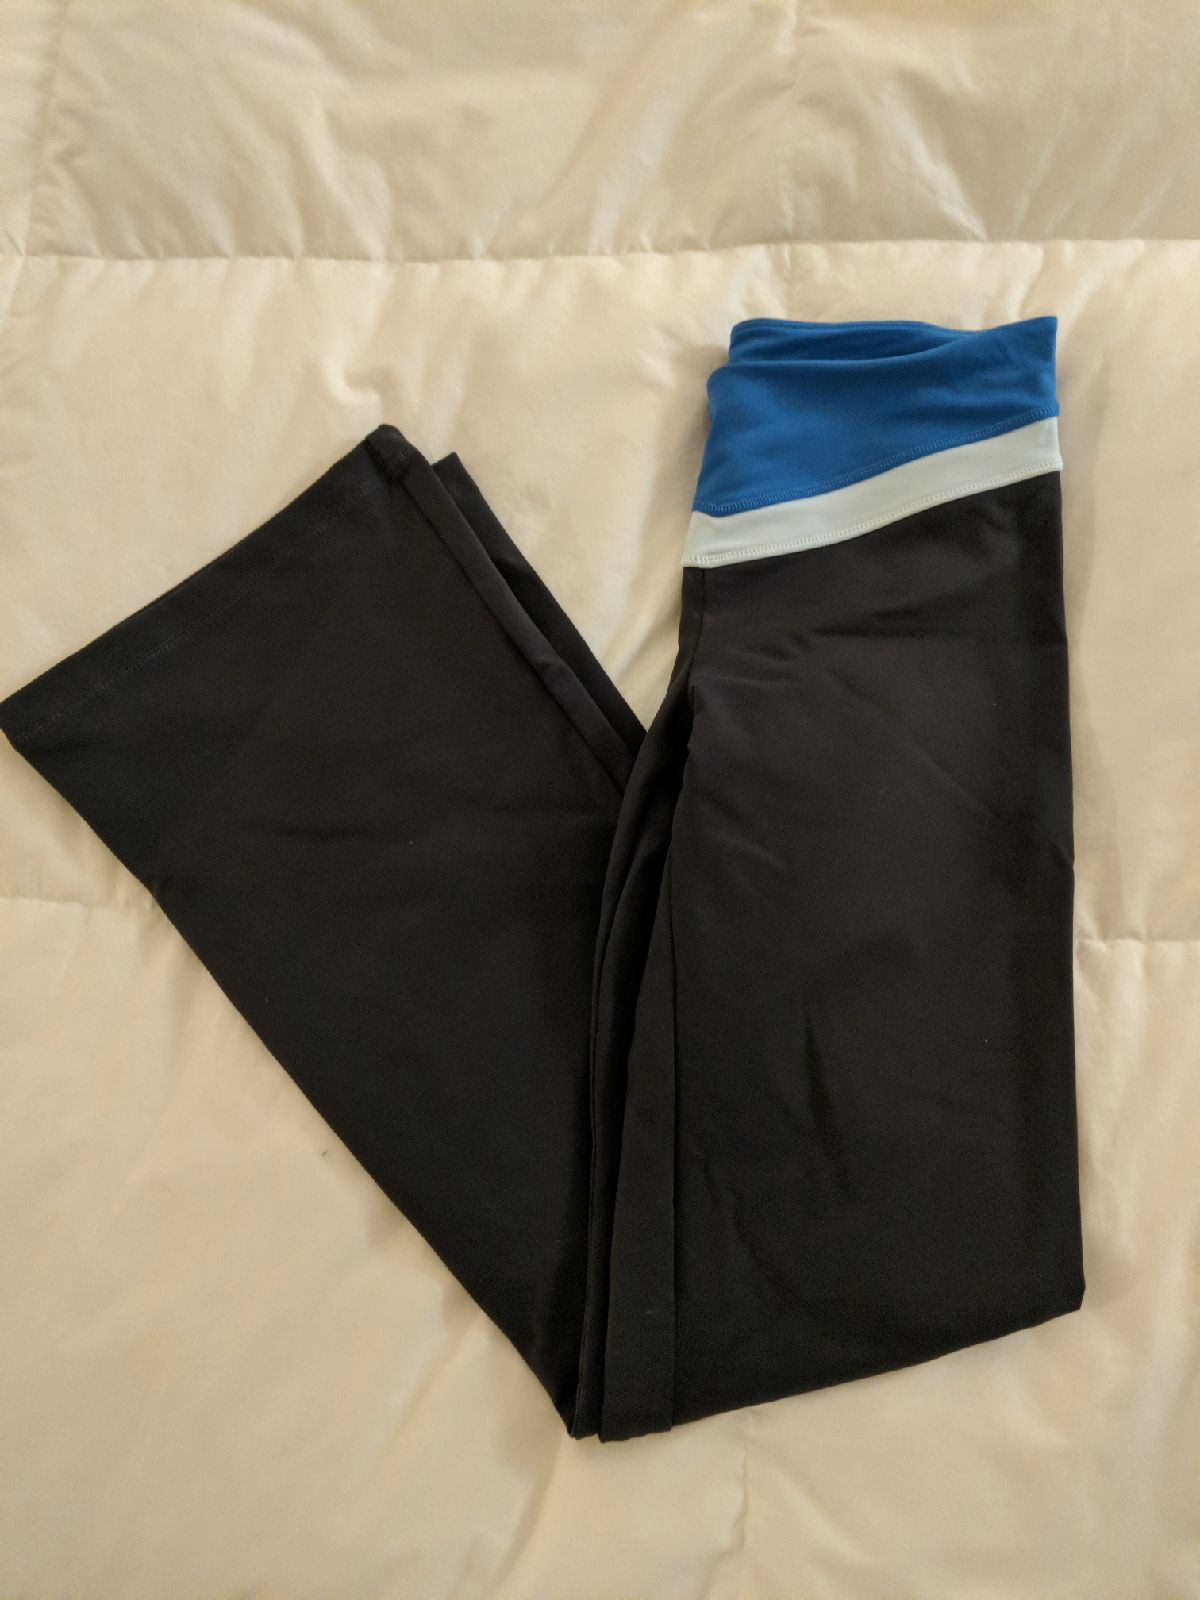 Victoria's Secret VSX flare yoga pants